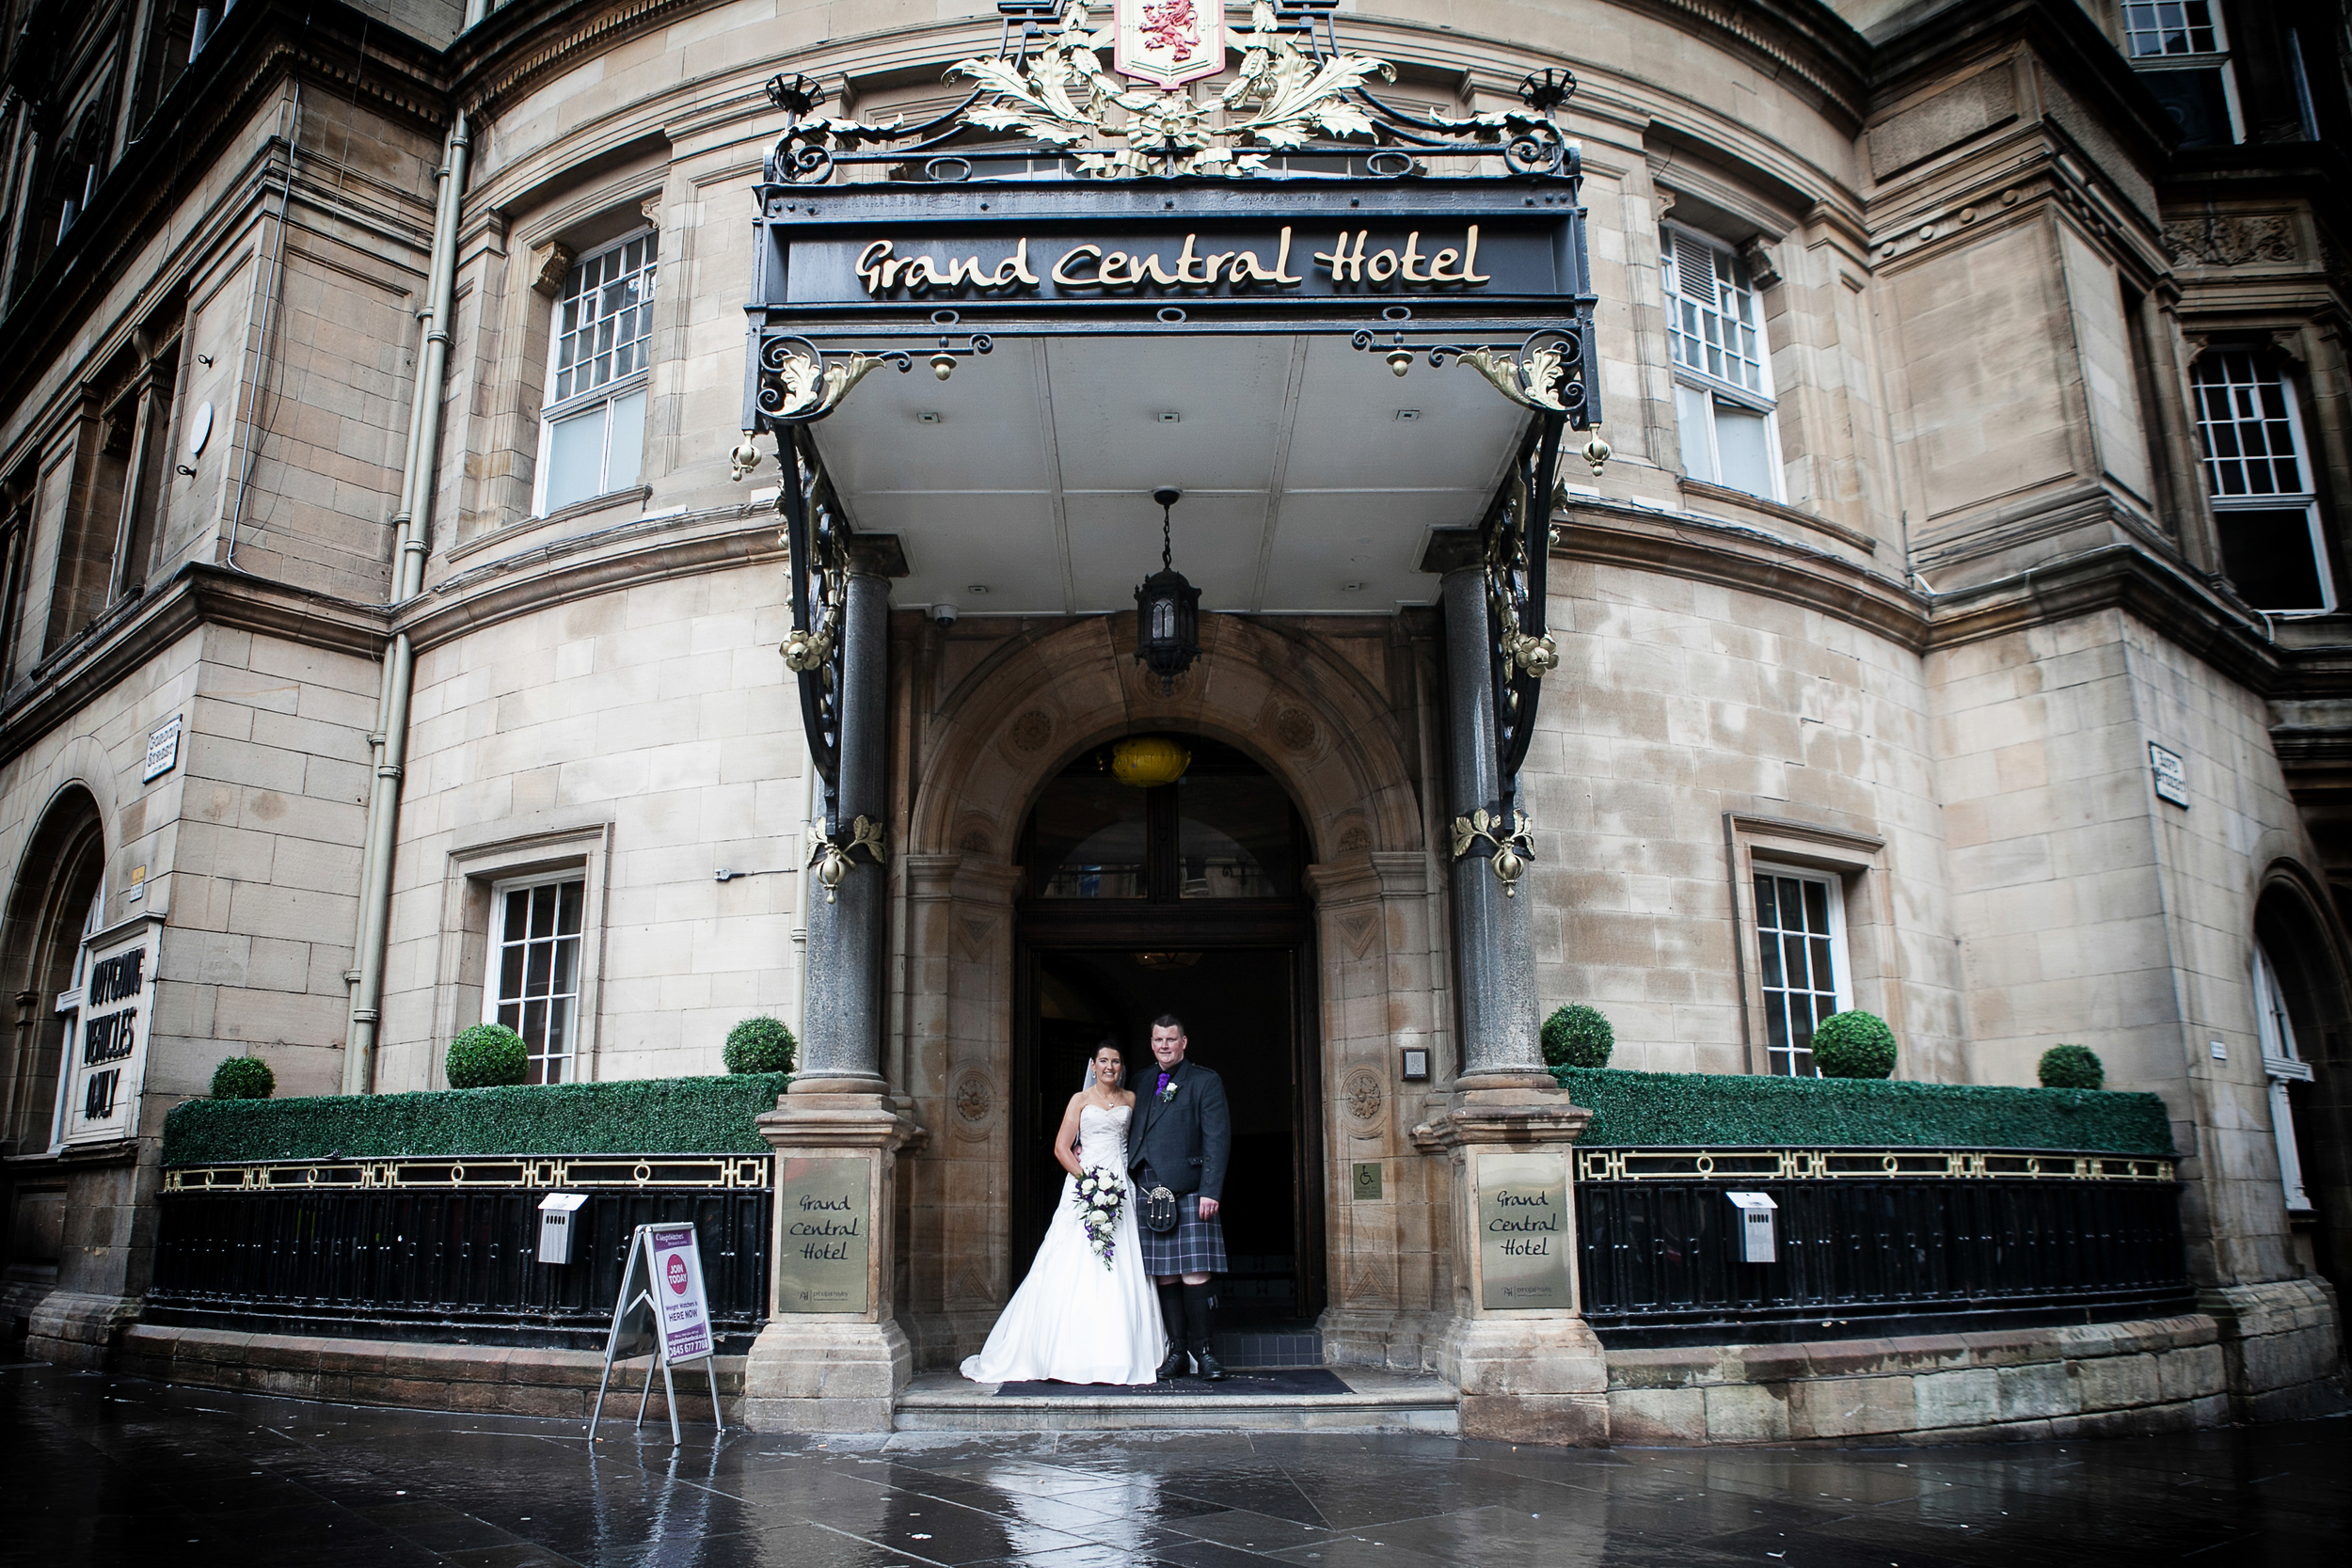 Grand Central Hotel Glasgow wedding photos